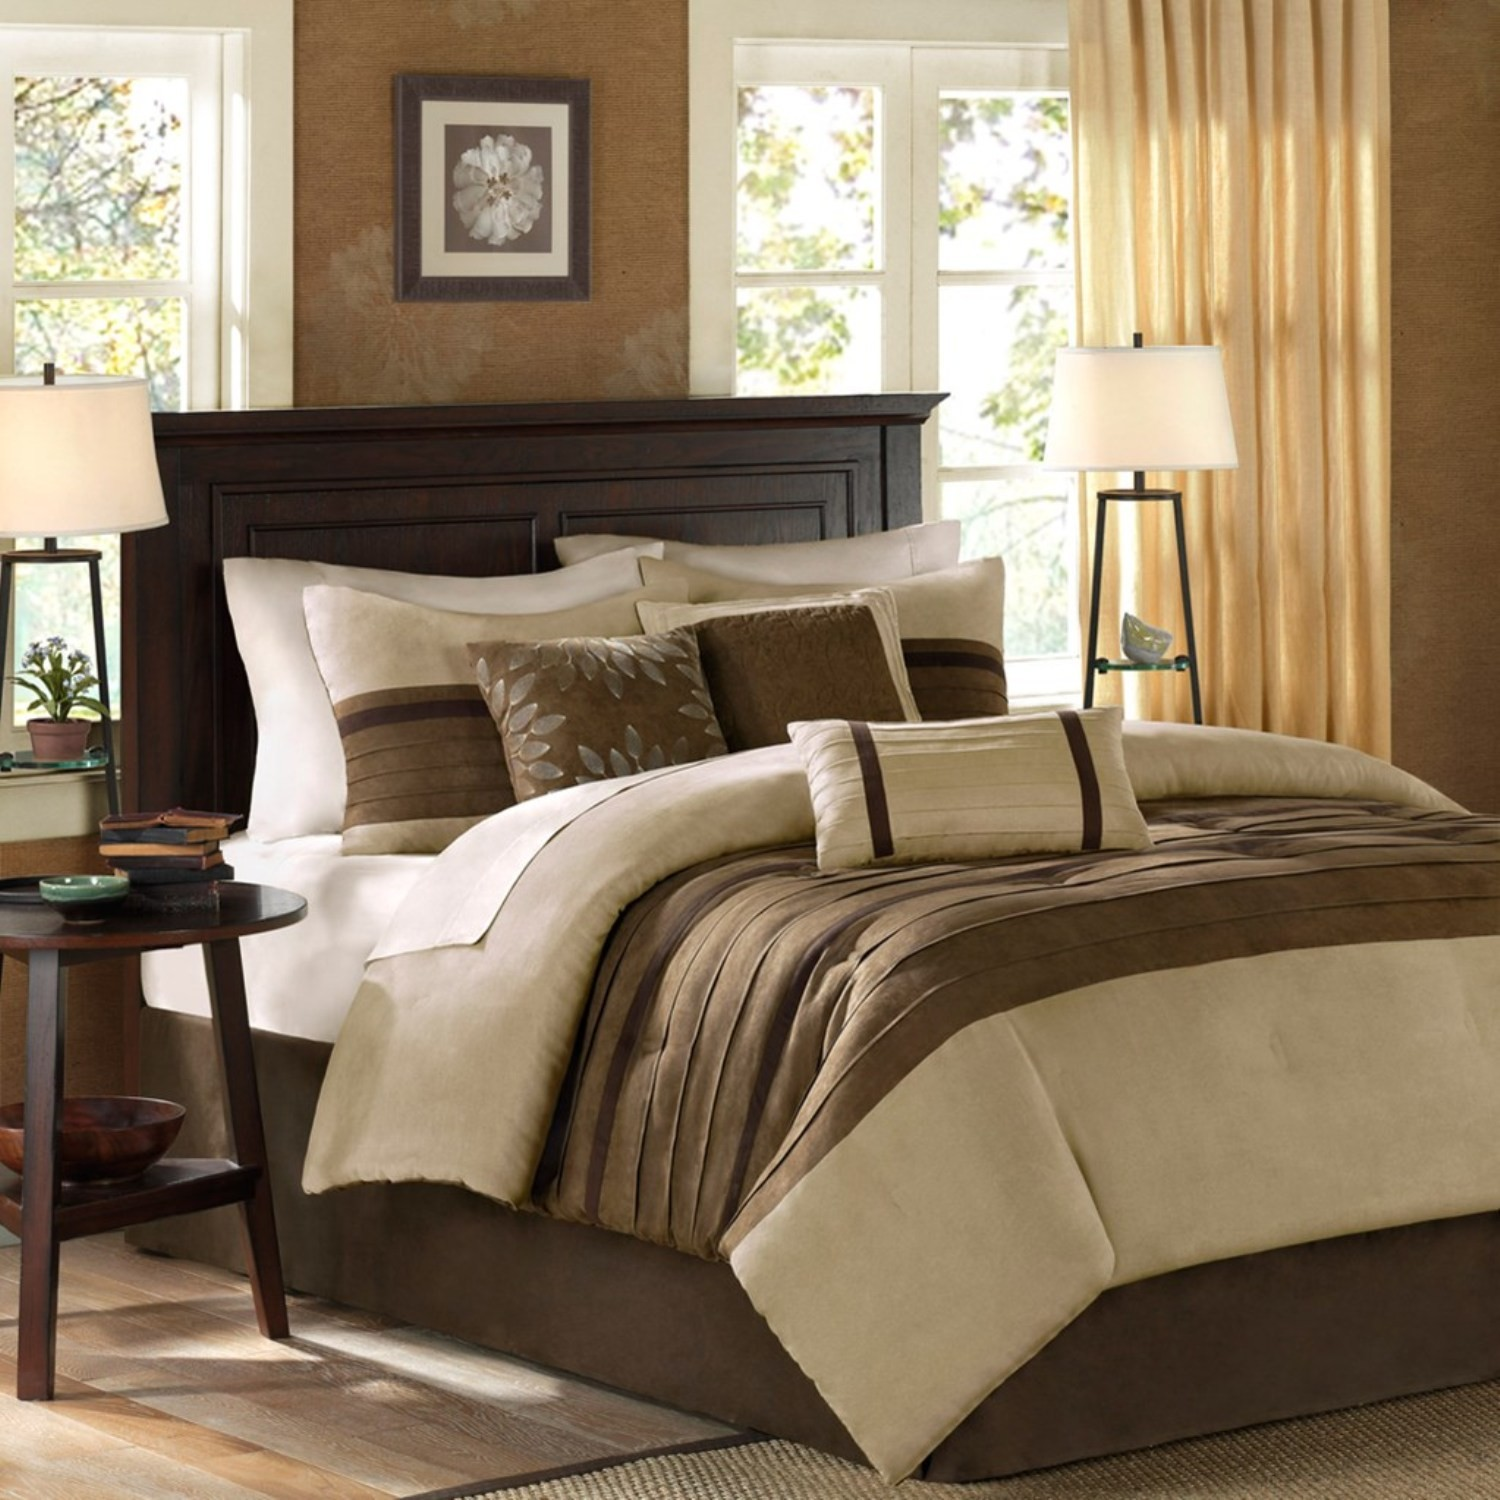 brand set browning lowest ebay new embroidered p s comforter suede price buckmark